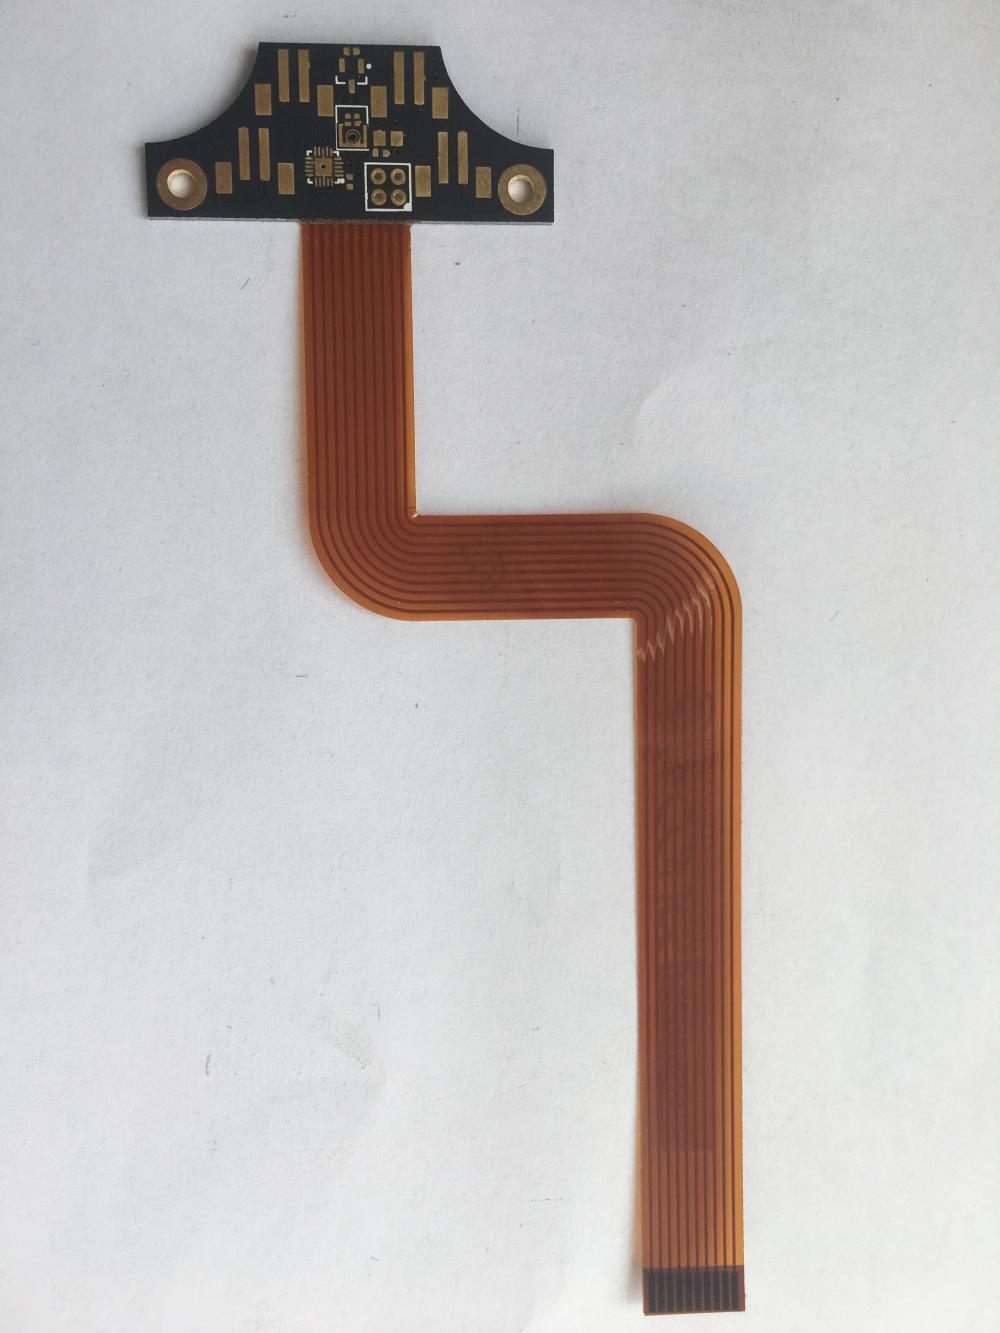 4 layer Rigid-Flex PCB ENIG 1.6mm+0.2mm